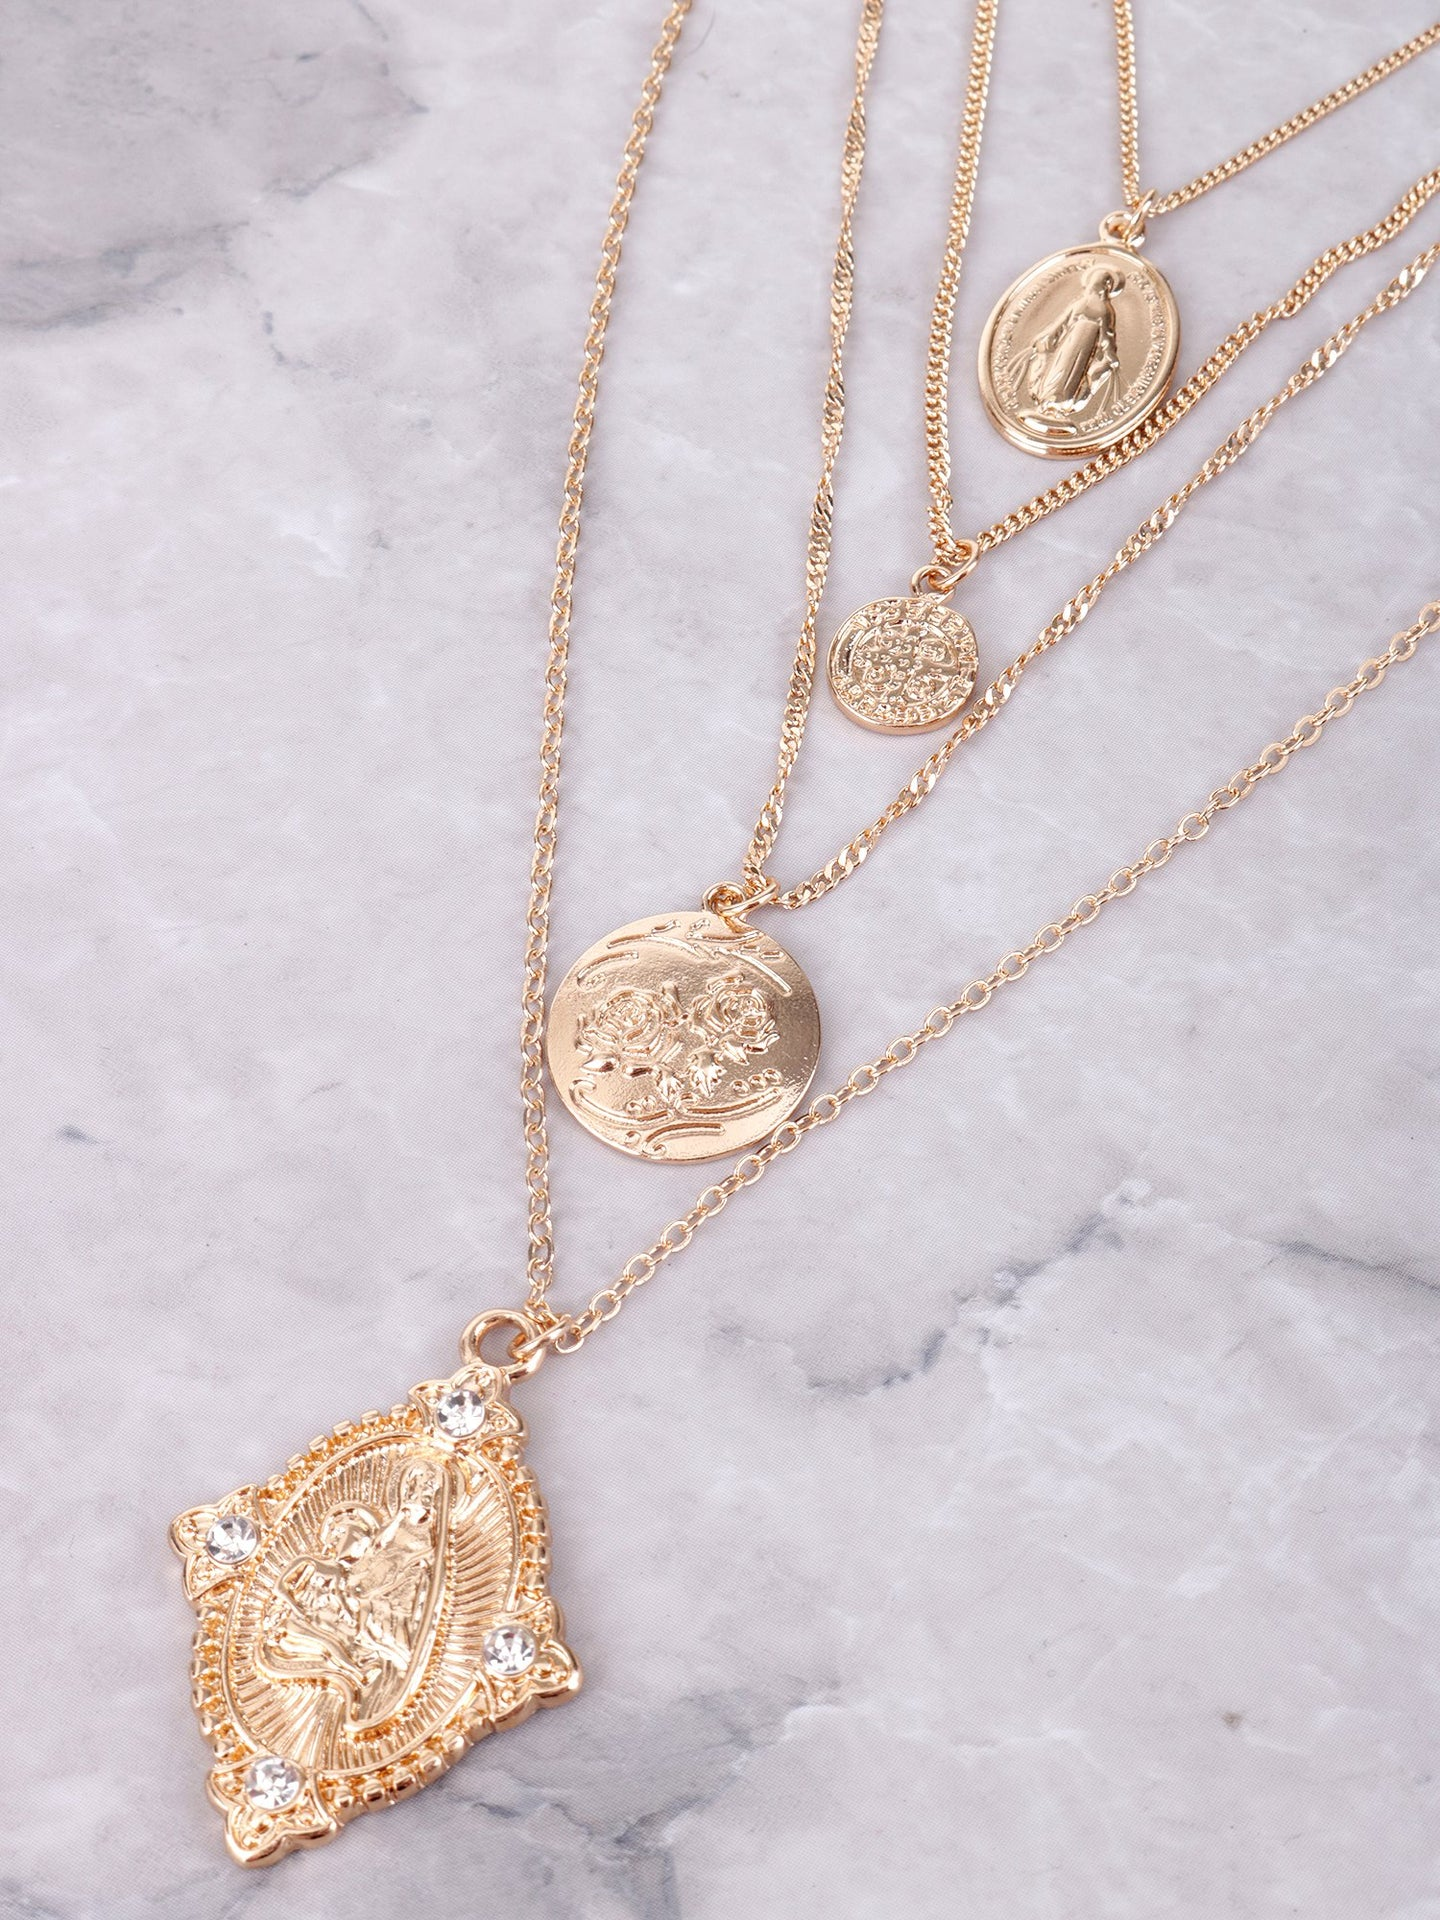 Virgin Mary Layered Necklace Anarchy Street Gold